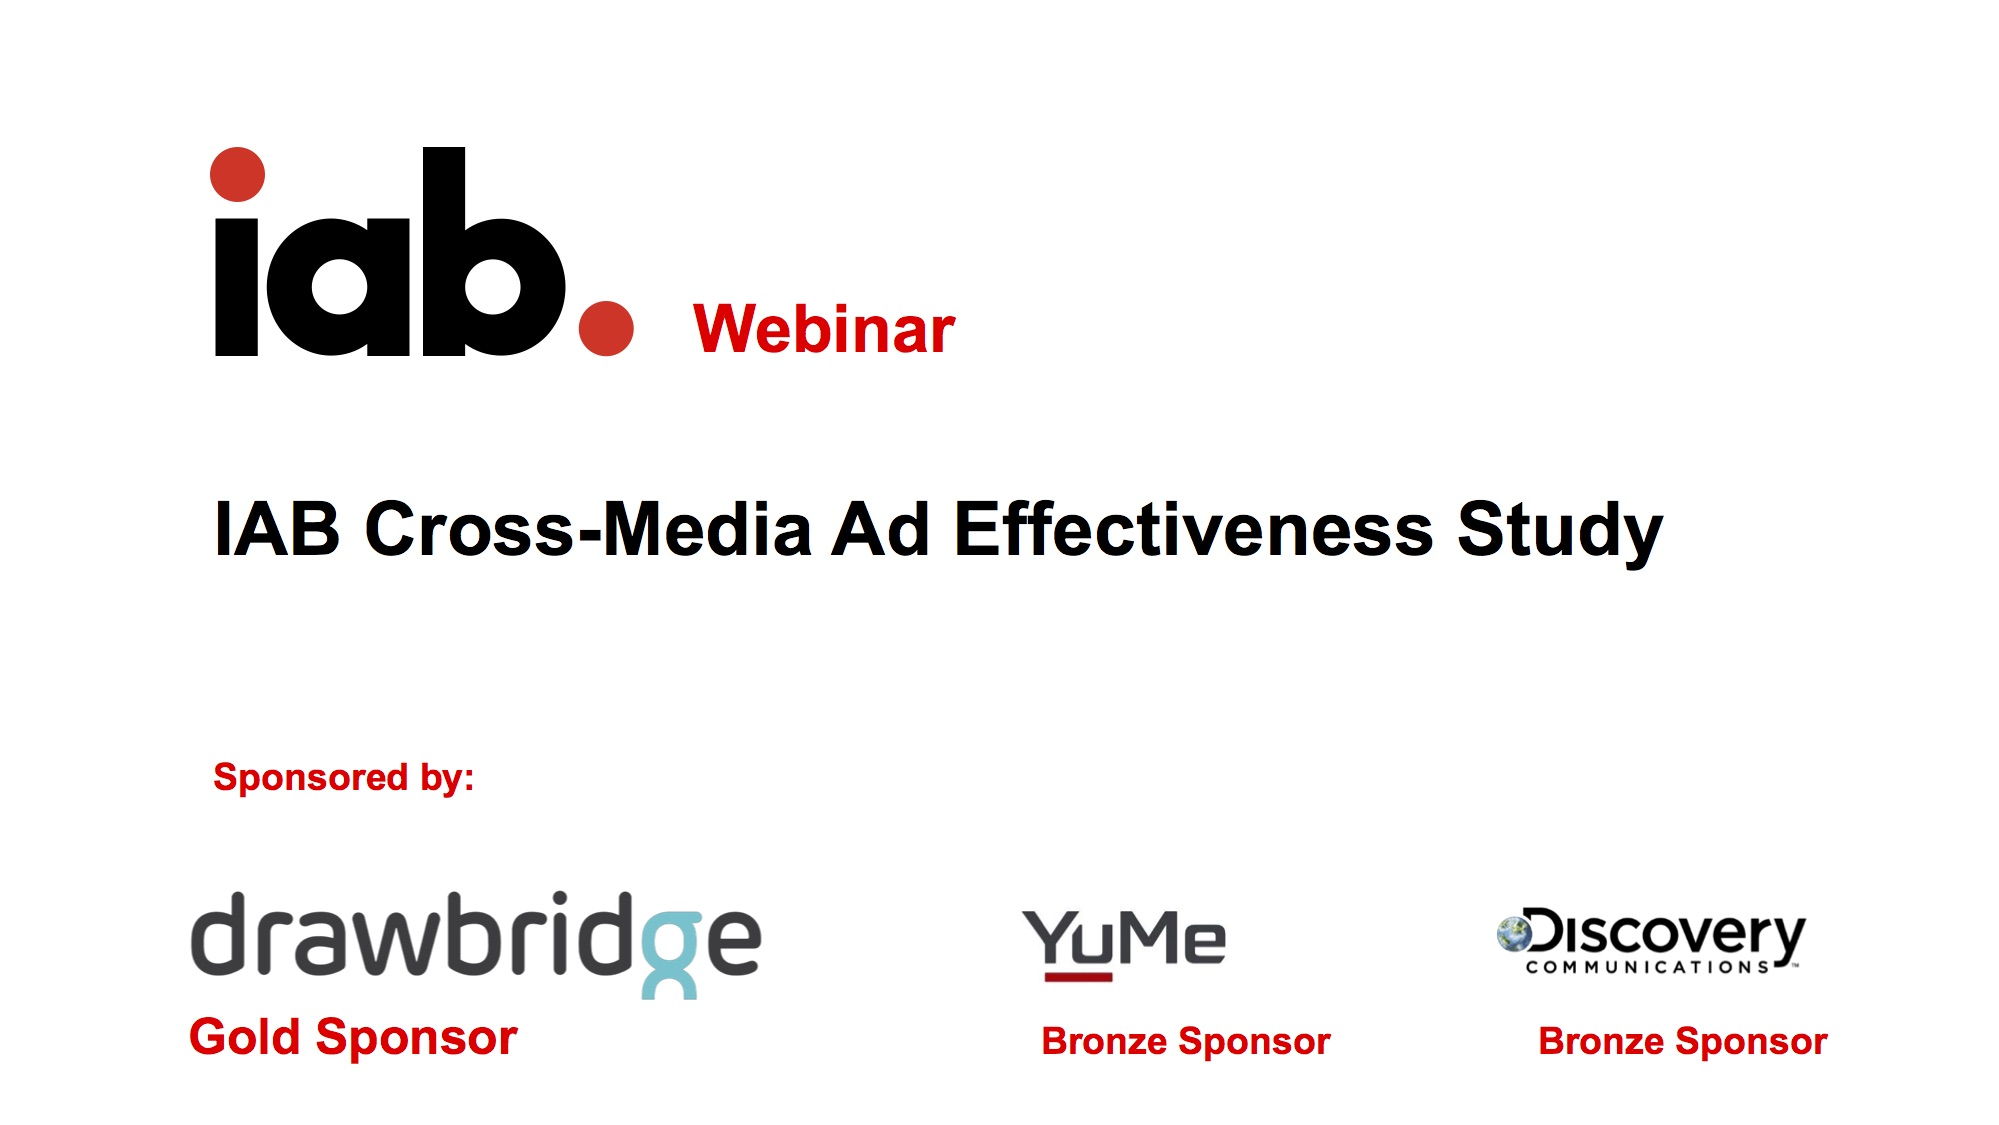 IAB Cross-Media Ad Effectiveness Study